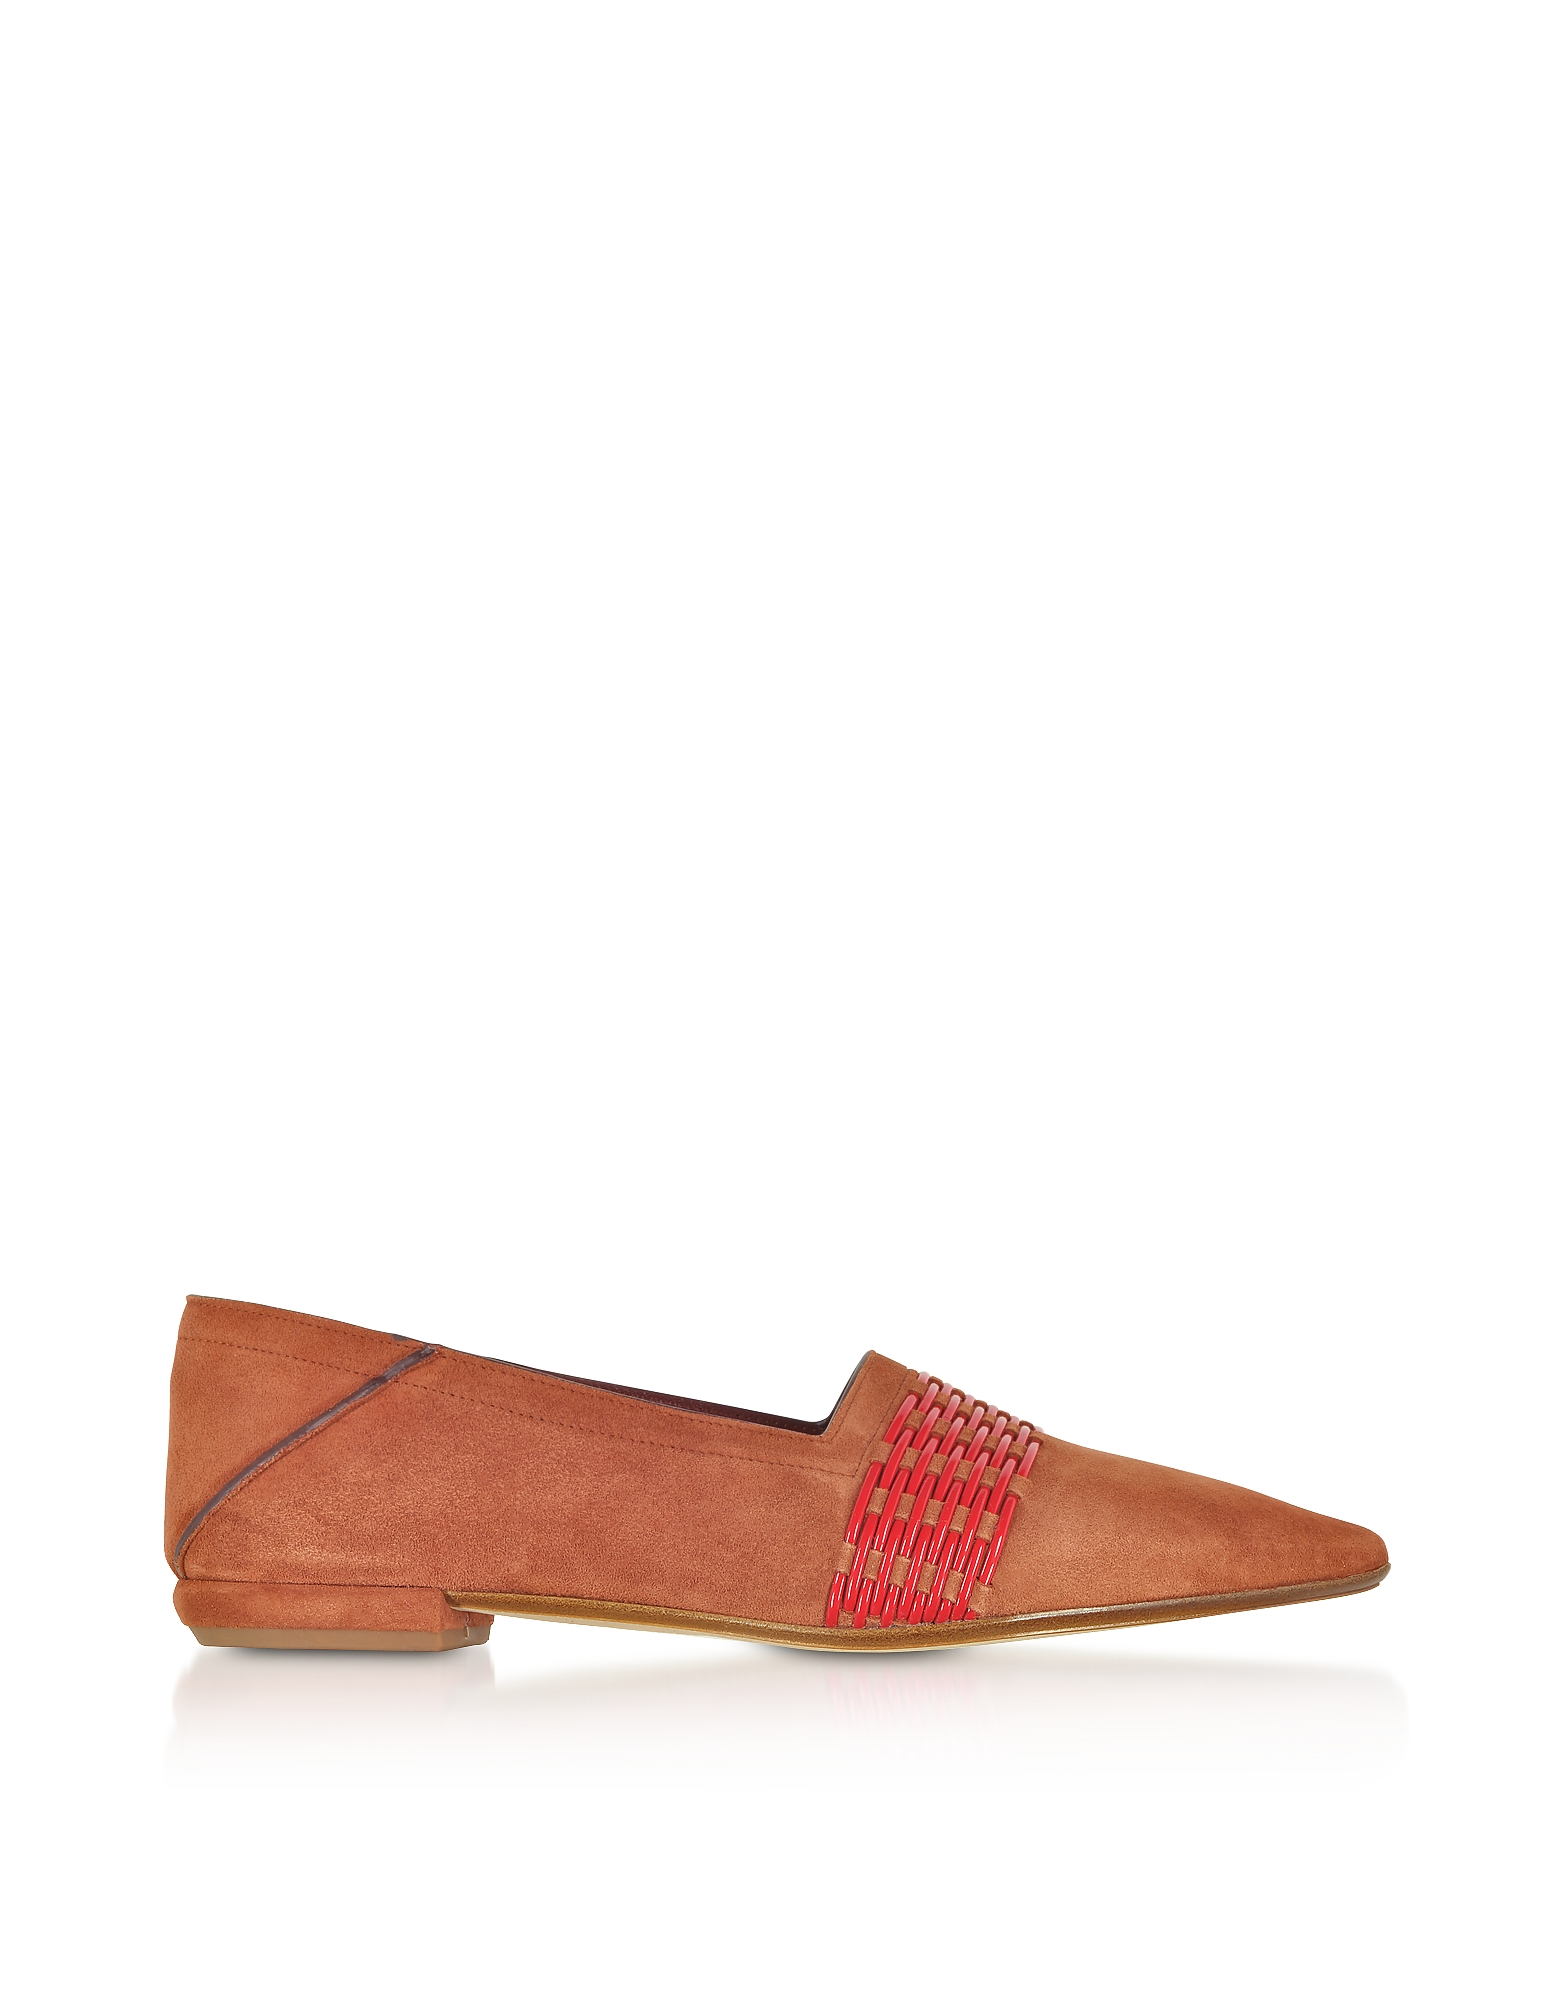 Rust Suede and Fiamma Red Fabric Loafers